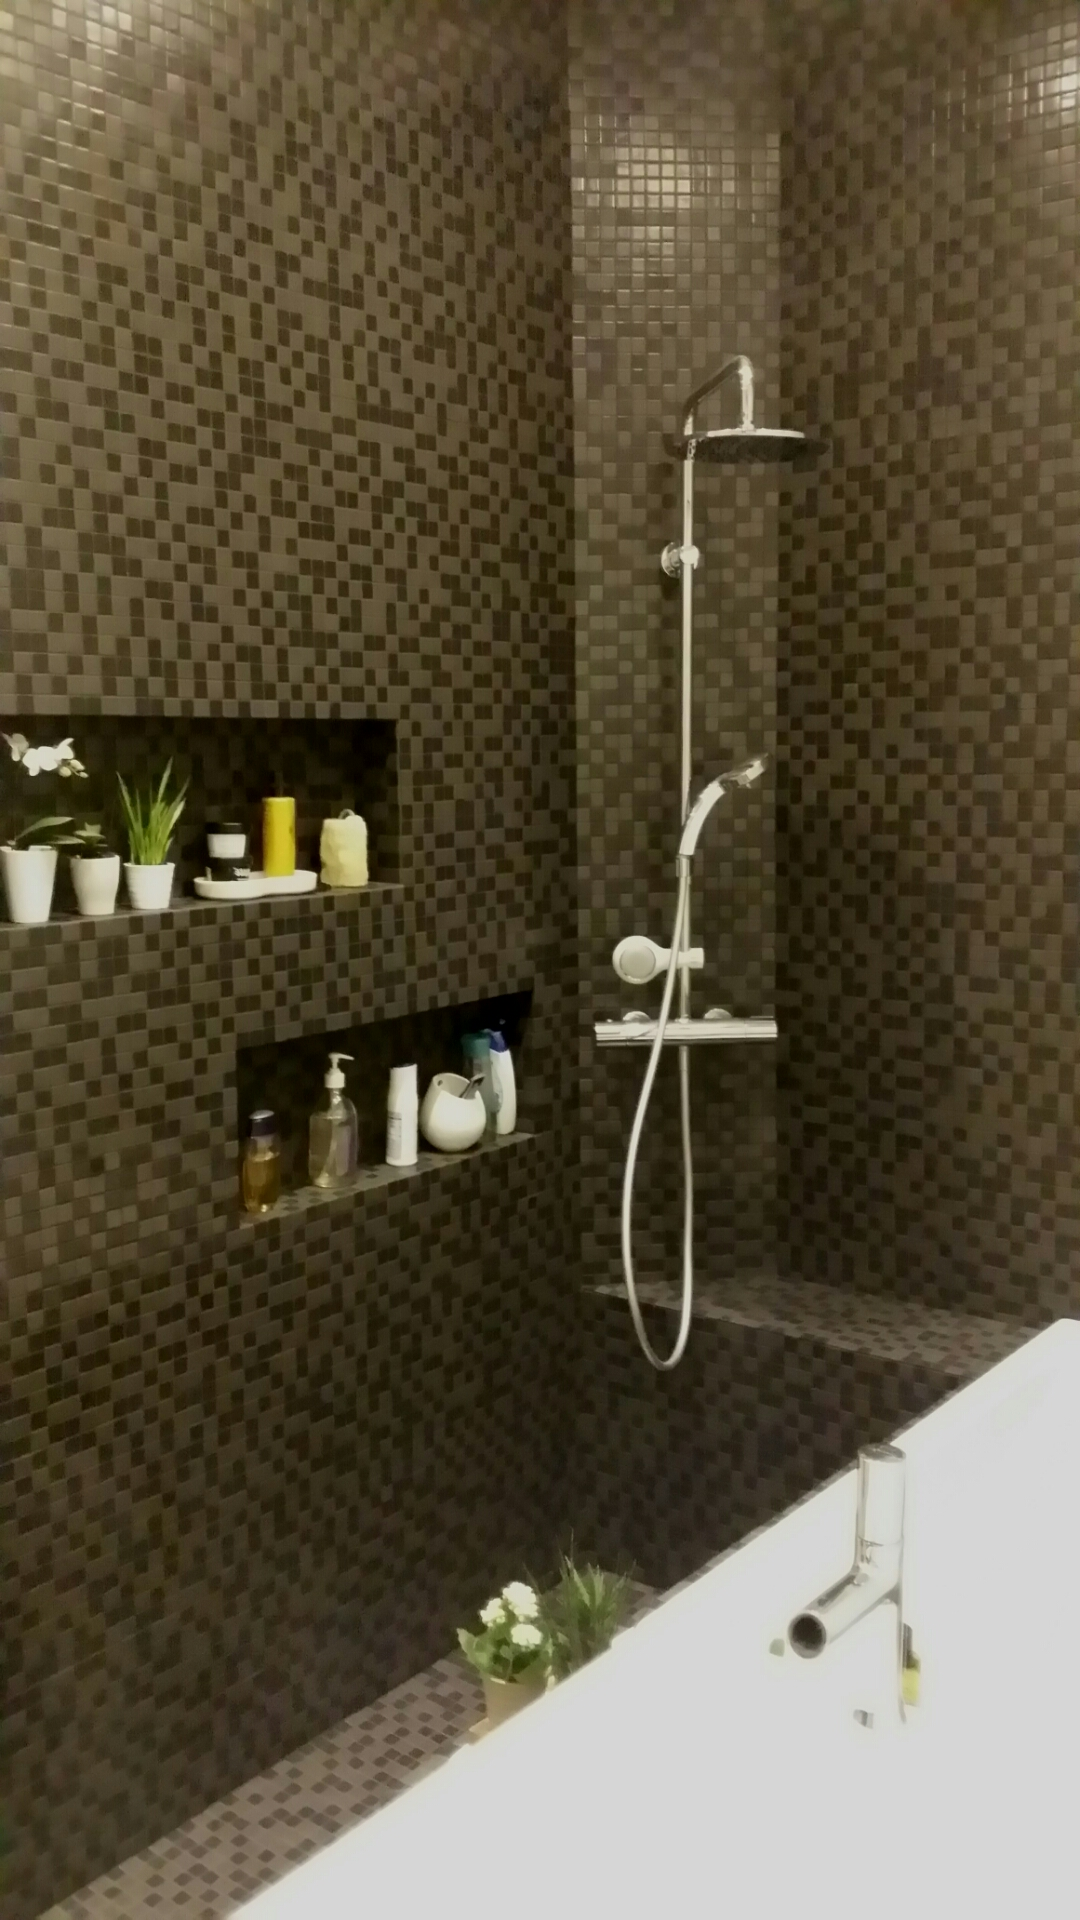 mosaique noire salle de bain niche c deco. Black Bedroom Furniture Sets. Home Design Ideas